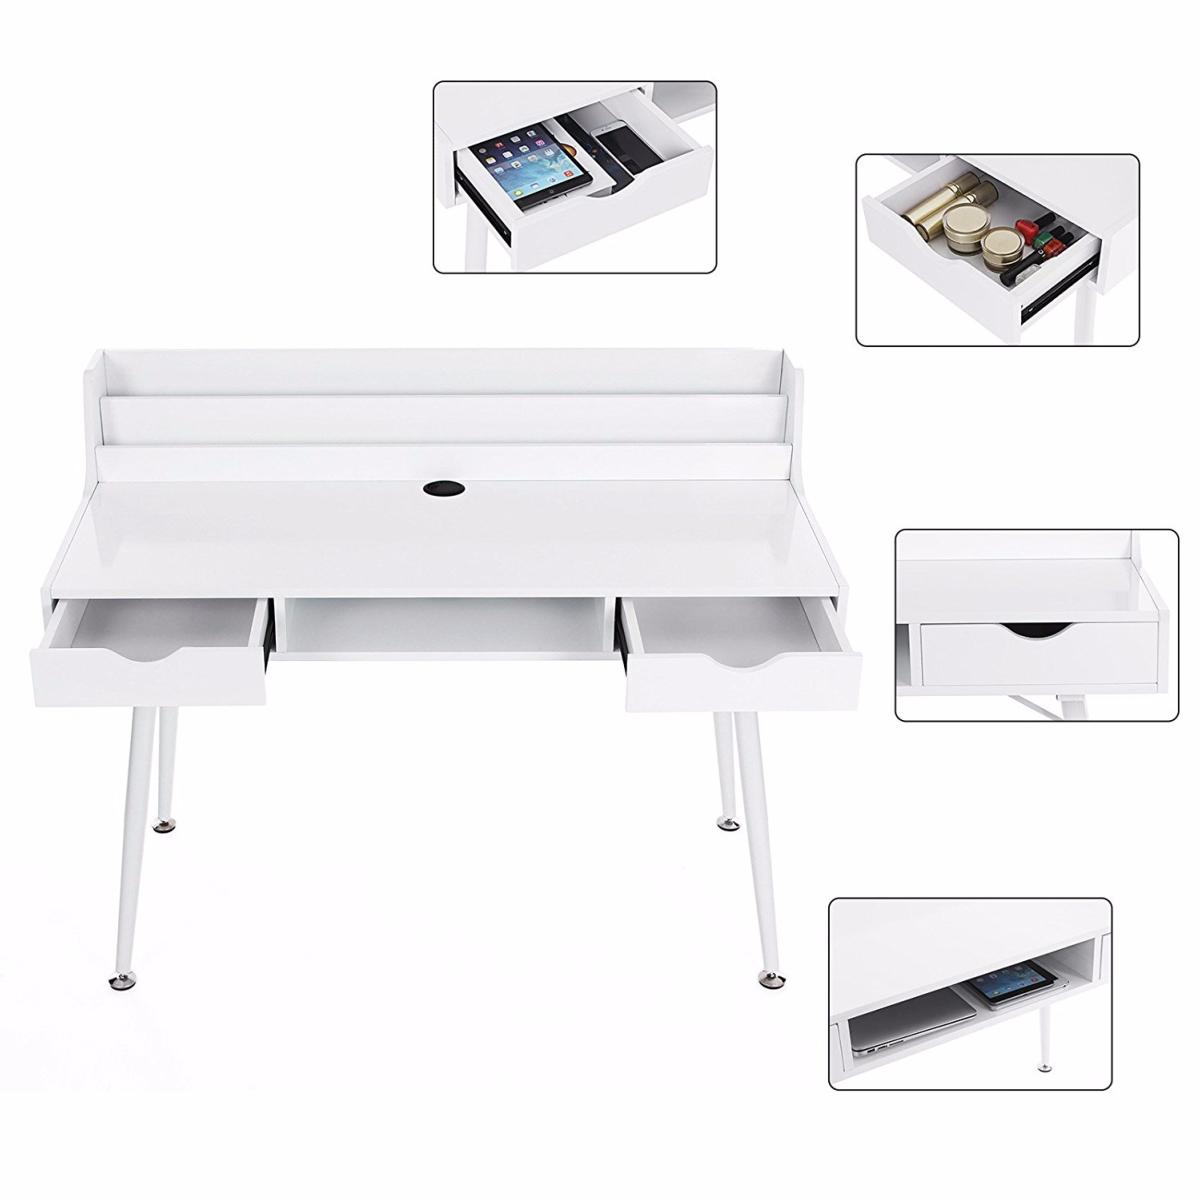 Bureau informatique design blanc cielterre commerce for Bureau informatique design